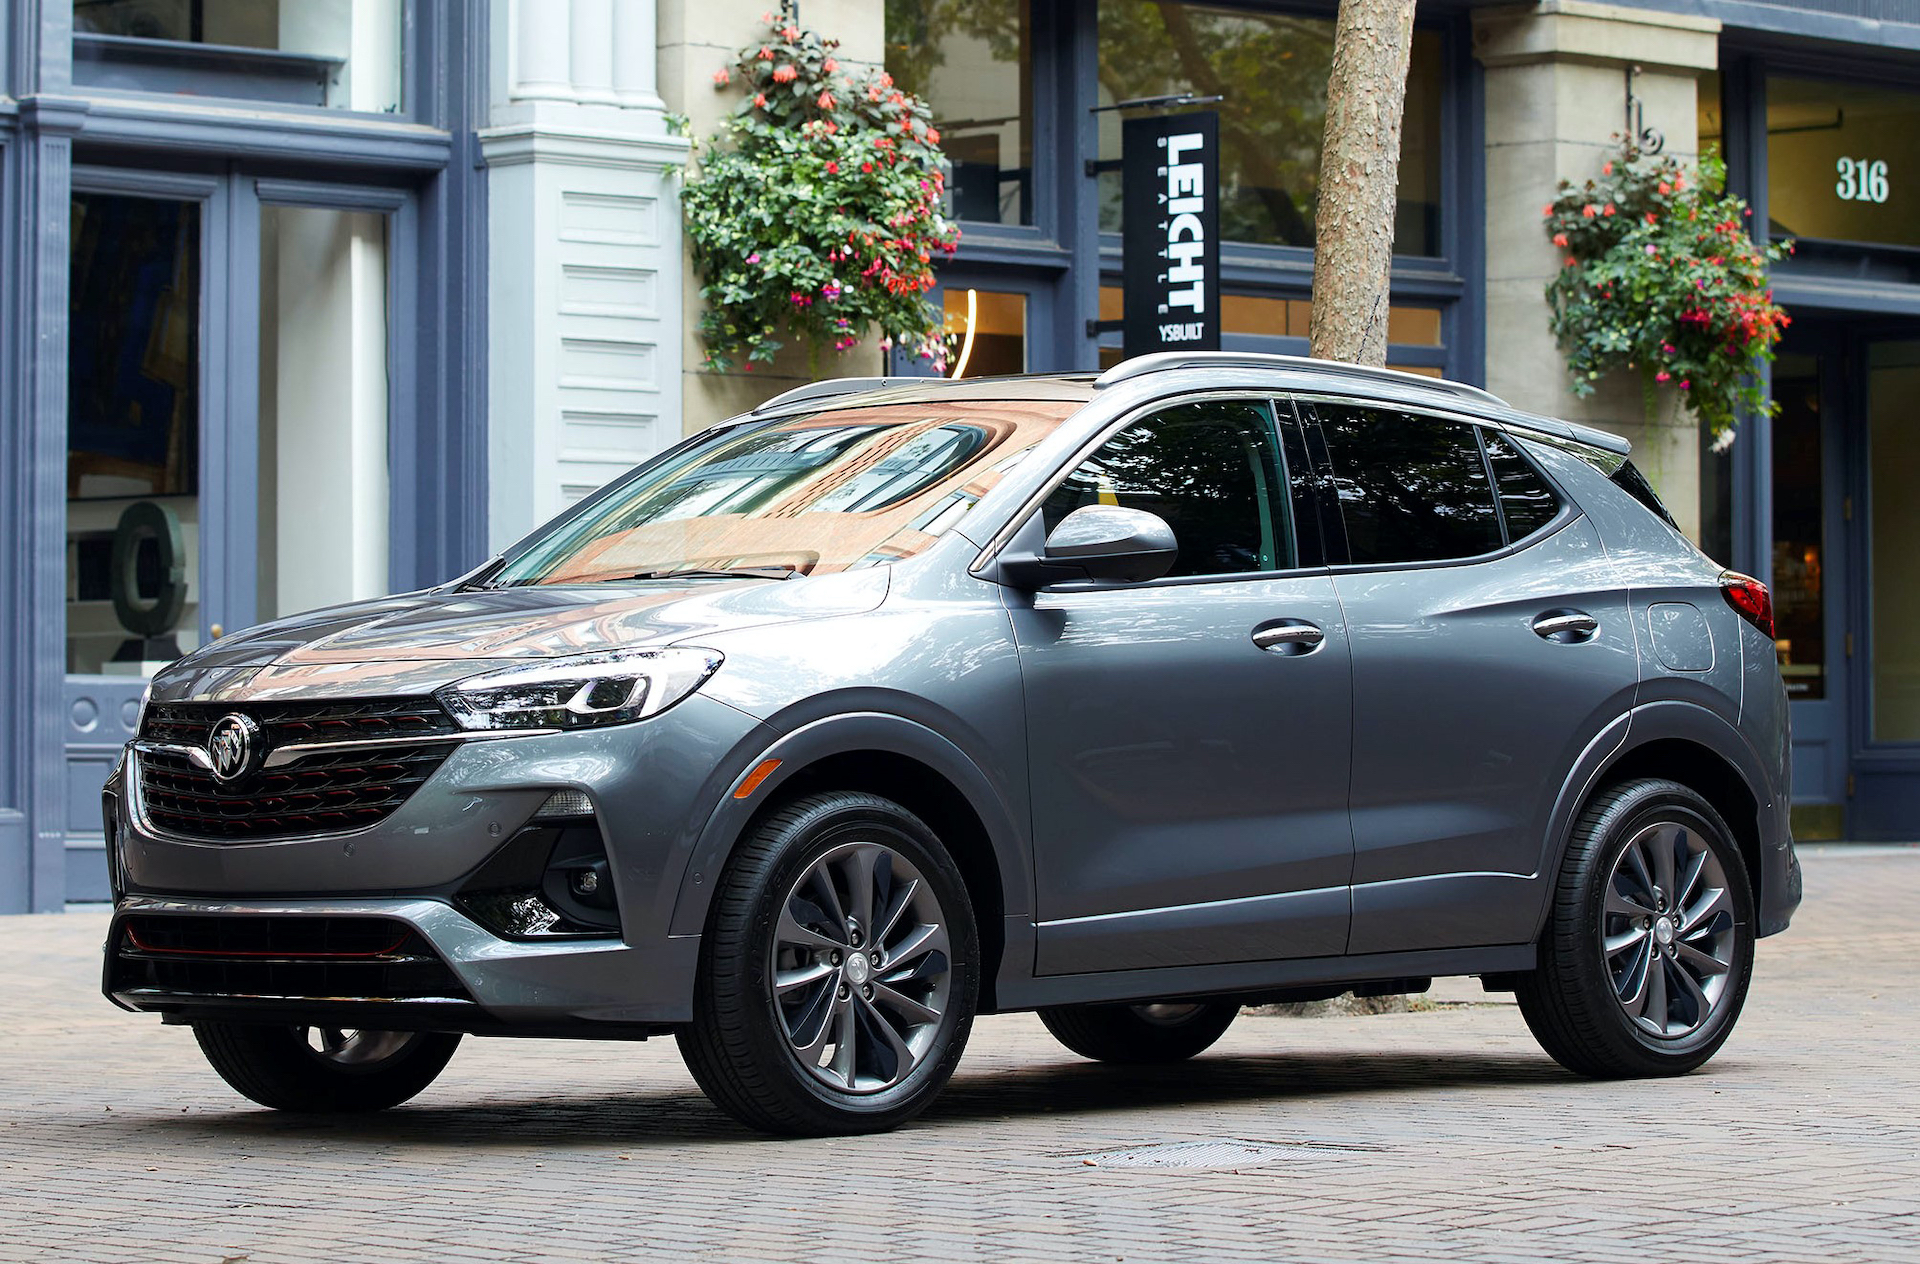 2021 Buick Encore Gx Review, New York Auto Show Canceled New 2021 Buick Encore Transmission, Tire Size, Test Drive